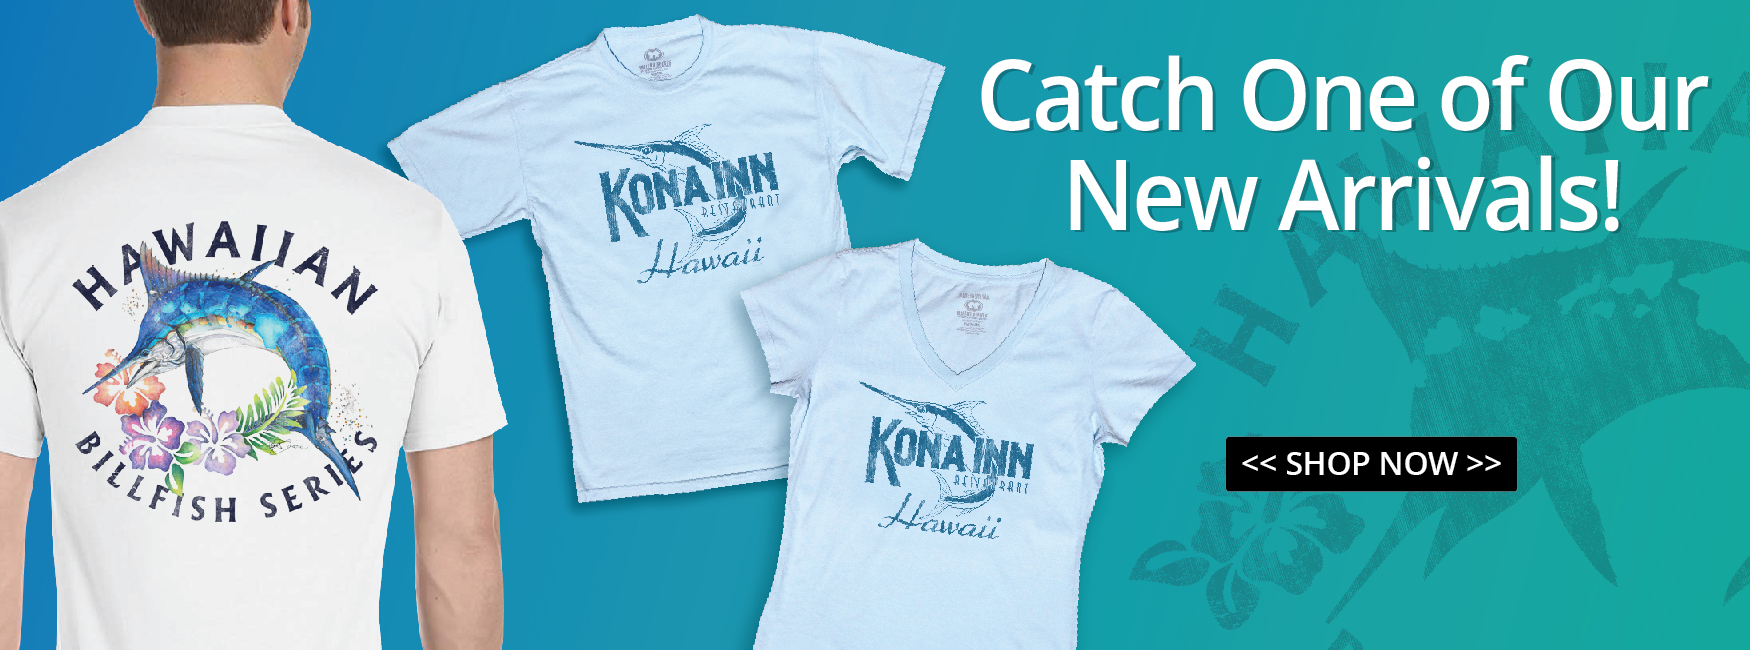 Fishing t-shirts, Kona, big island, Hawaii, Marlin fishing